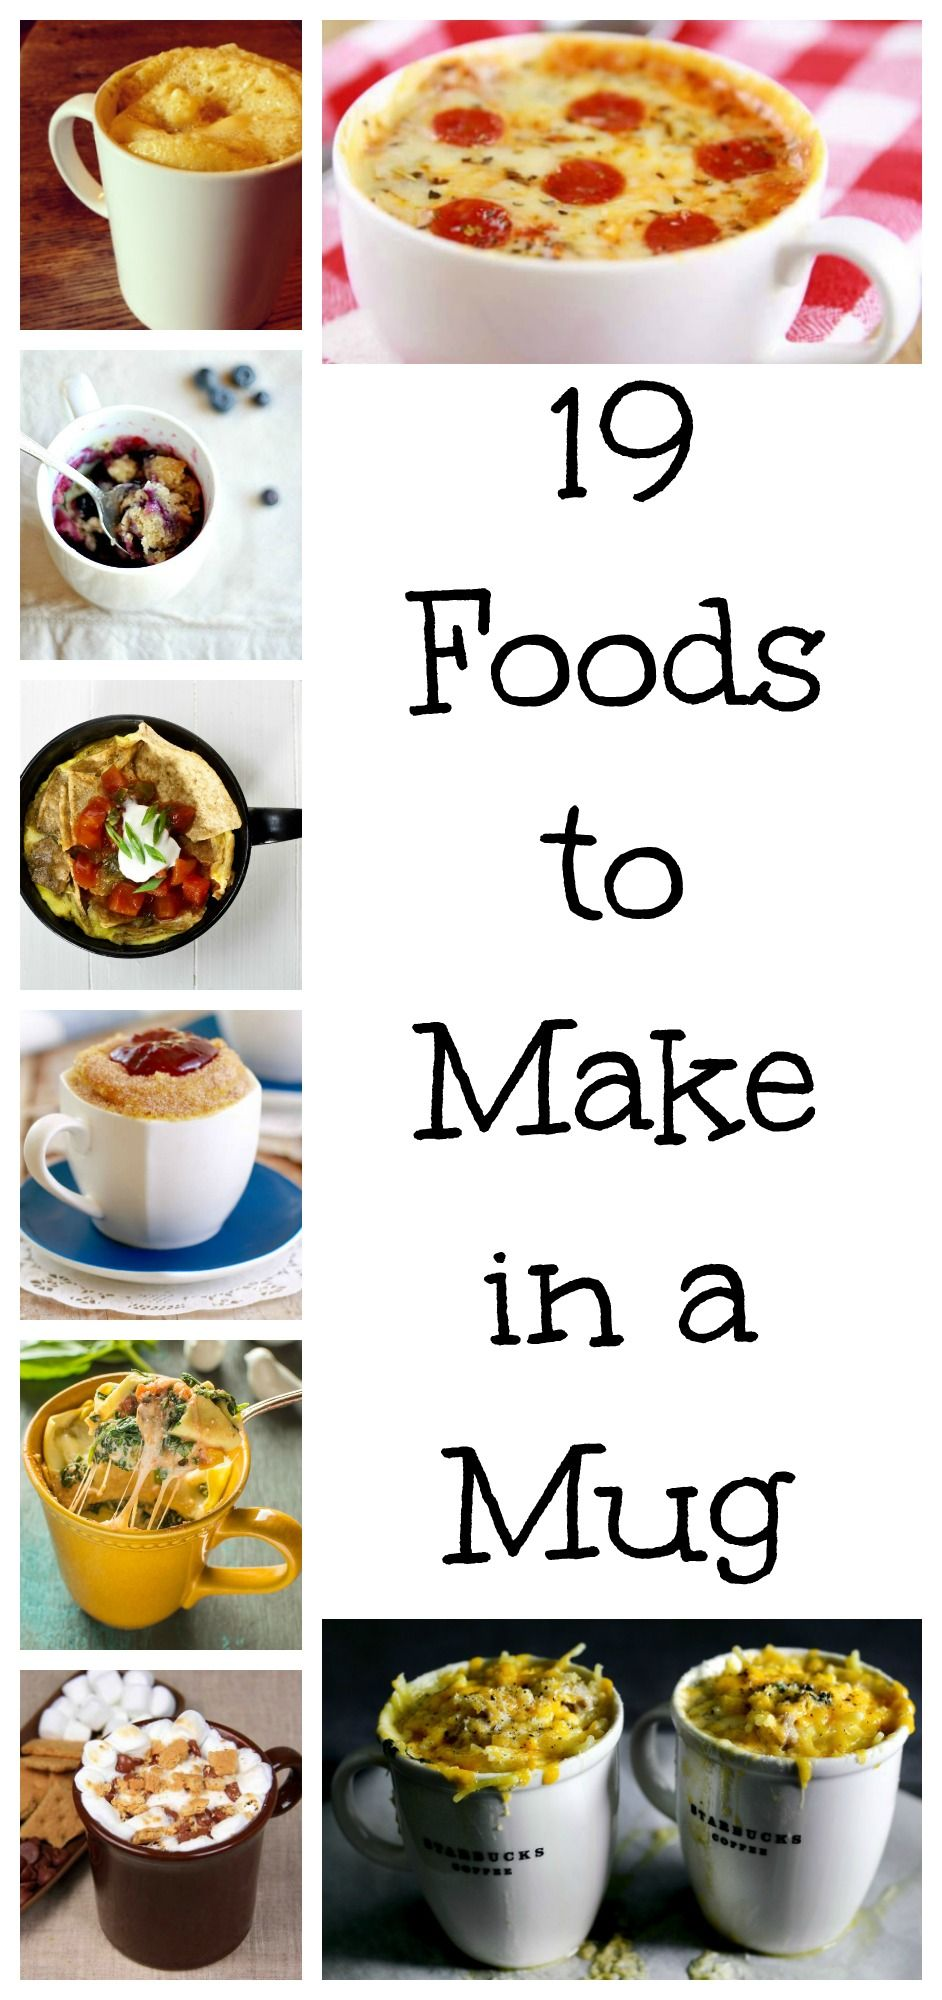 Make A Meal In Mug The Microwave Any Time Of Day With One These Yummy Recipes